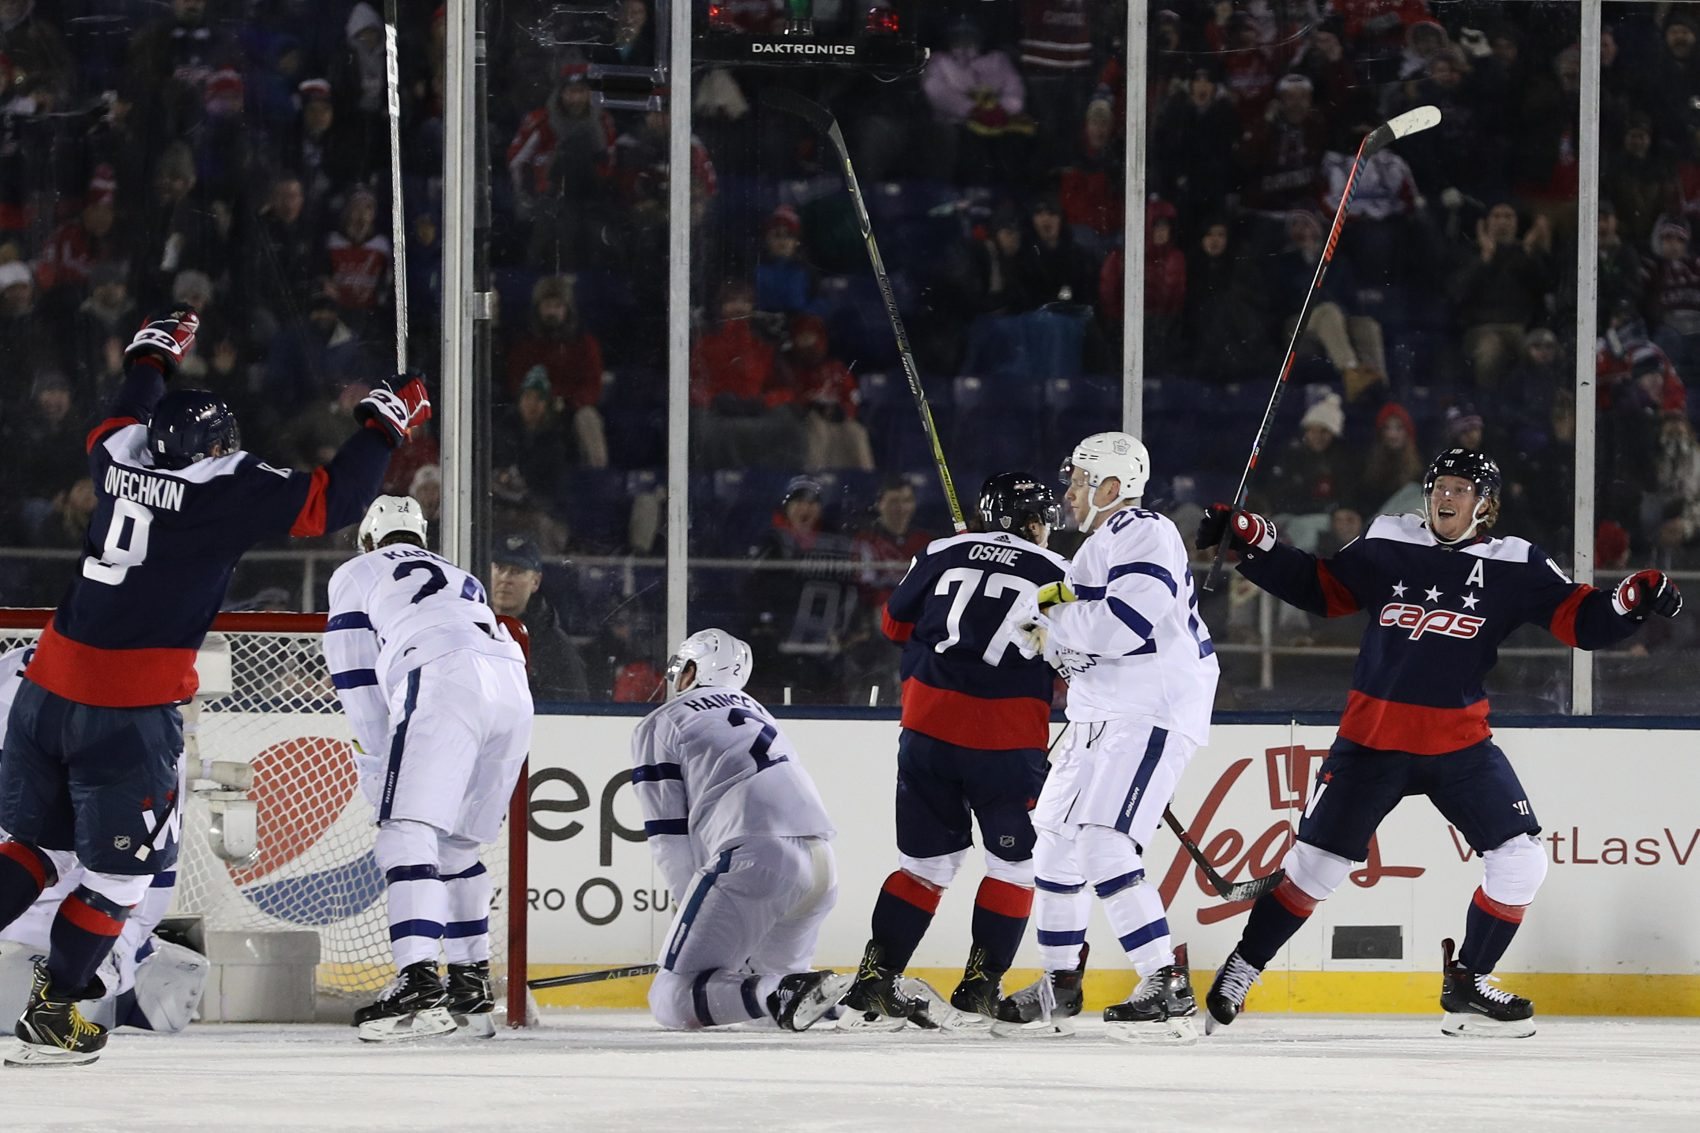 The Capitals beat the Maple Leafs 5-2 on Saturday at Navy-Marine Corps Memorial Stadium. (Patrick Smith/Getty Images)